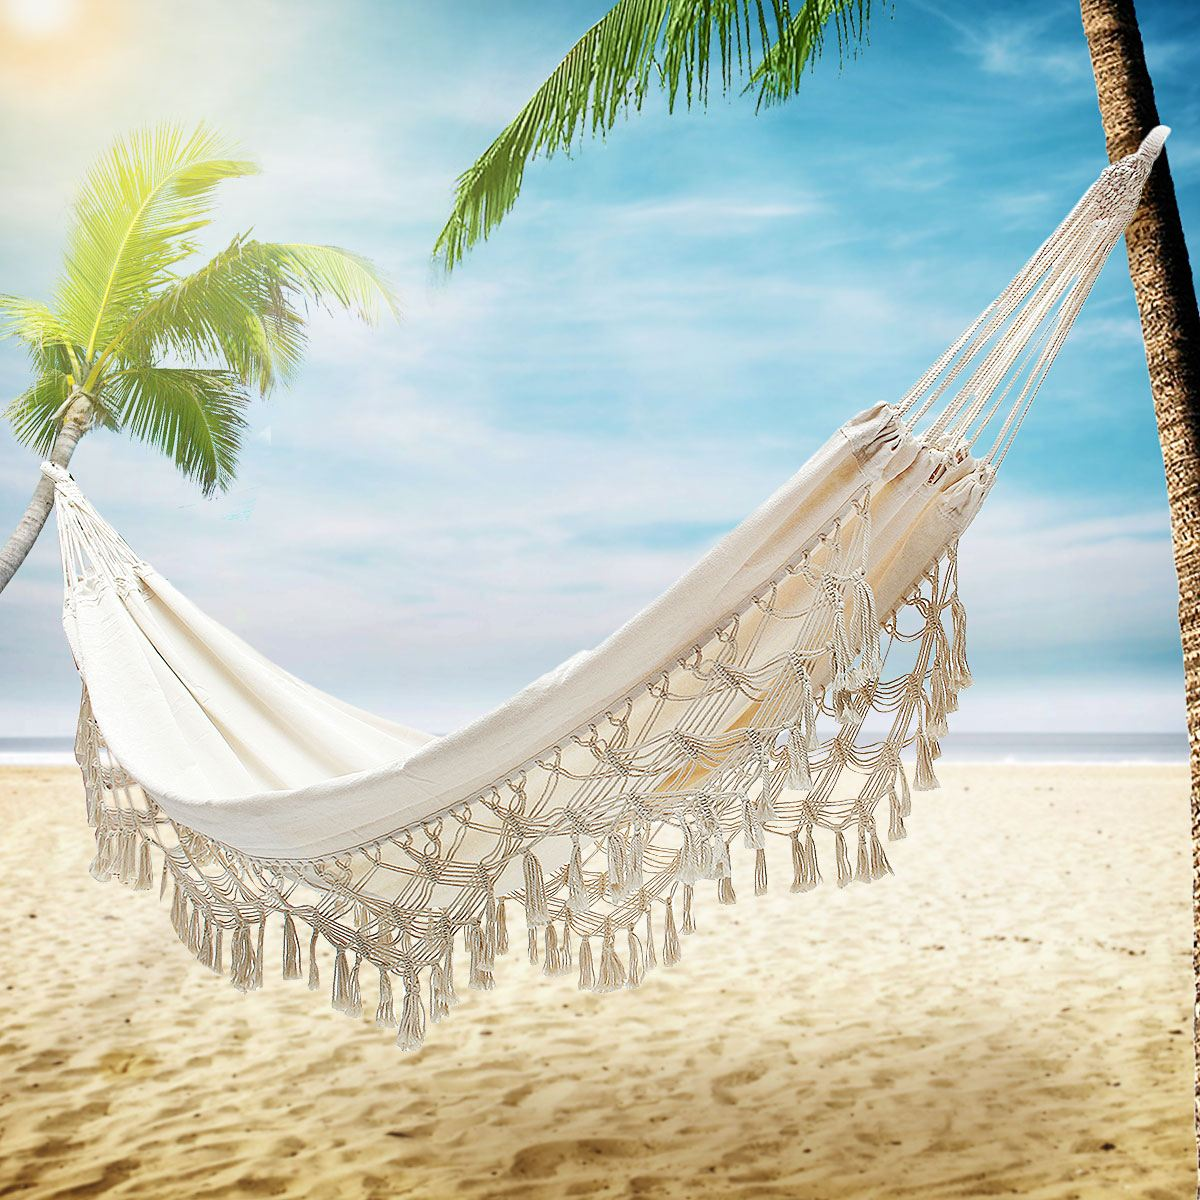 Remarkable Us 35 38 42 Off Thicken Hammock Chair Swing Outdoor Camping Hammock Sleep Double Garden Kids Room Dormitory Hanging Hammock Chairs Home Cotton In Theyellowbook Wood Chair Design Ideas Theyellowbookinfo